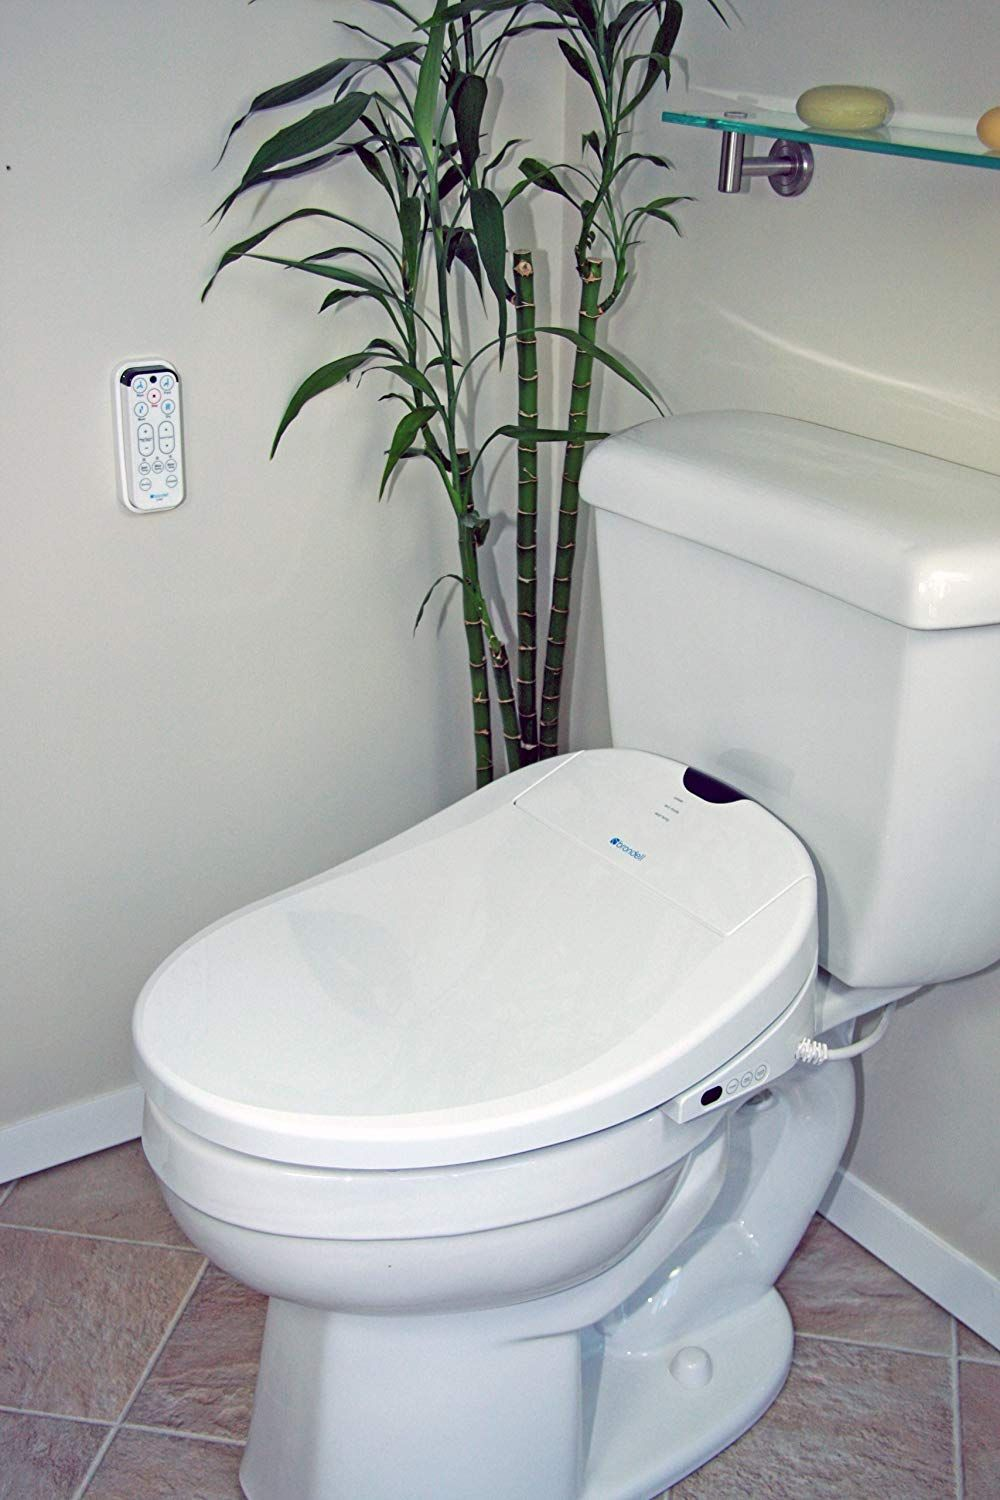 Best Bidet Toilet Seat Reviews For 2020 in 2020 Heated